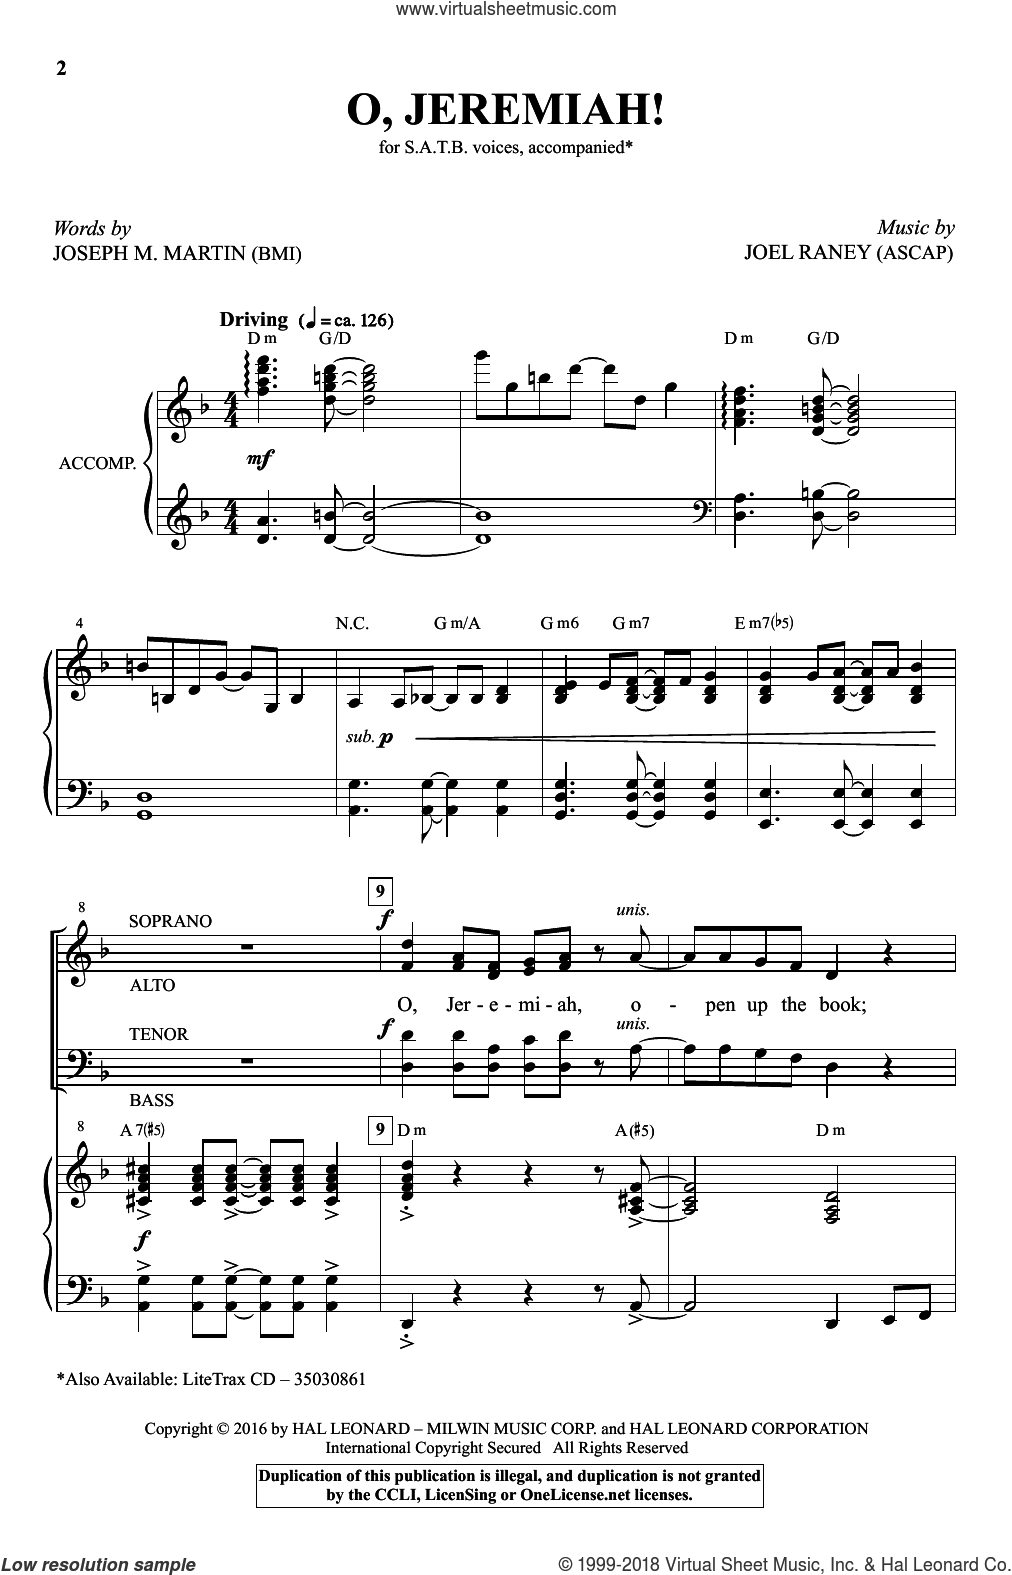 O, Jeremiah! sheet music for choir and piano (SATB) by Joseph M. Martin and Joel Raney. Score Image Preview.